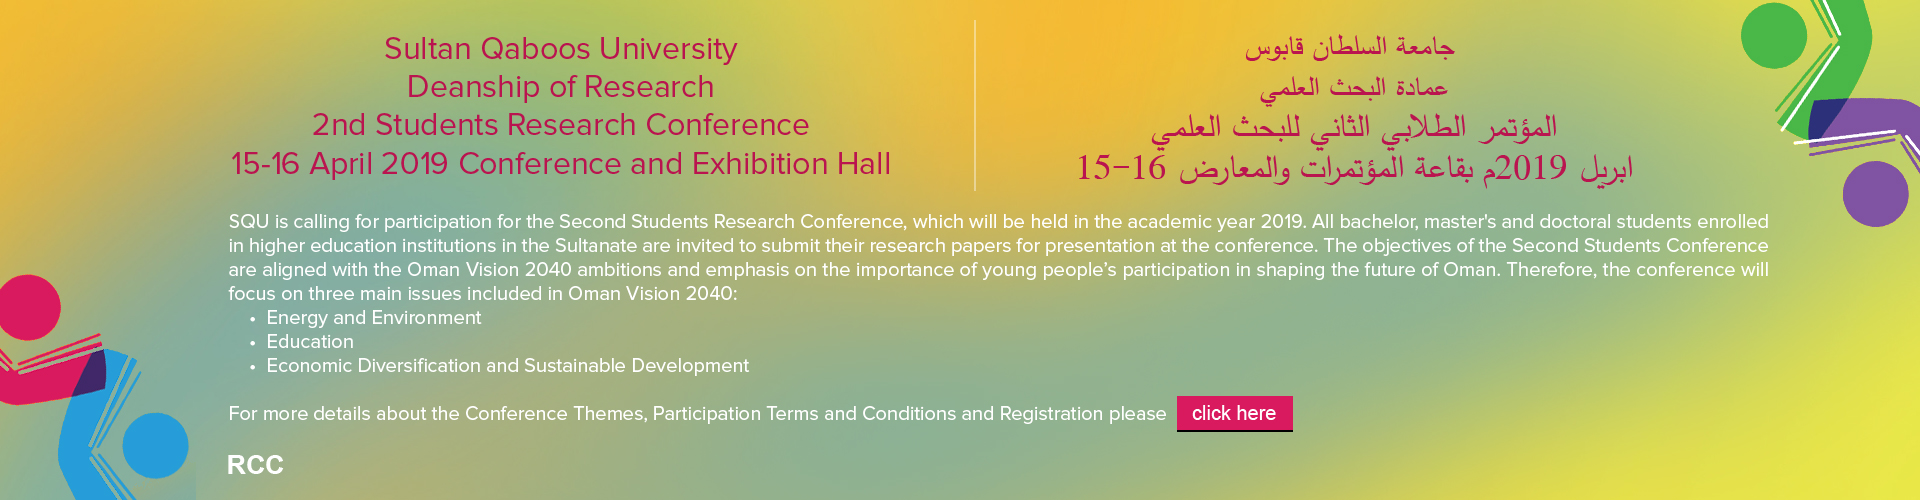 2nd Students Research Conferences 15-16 April 2019